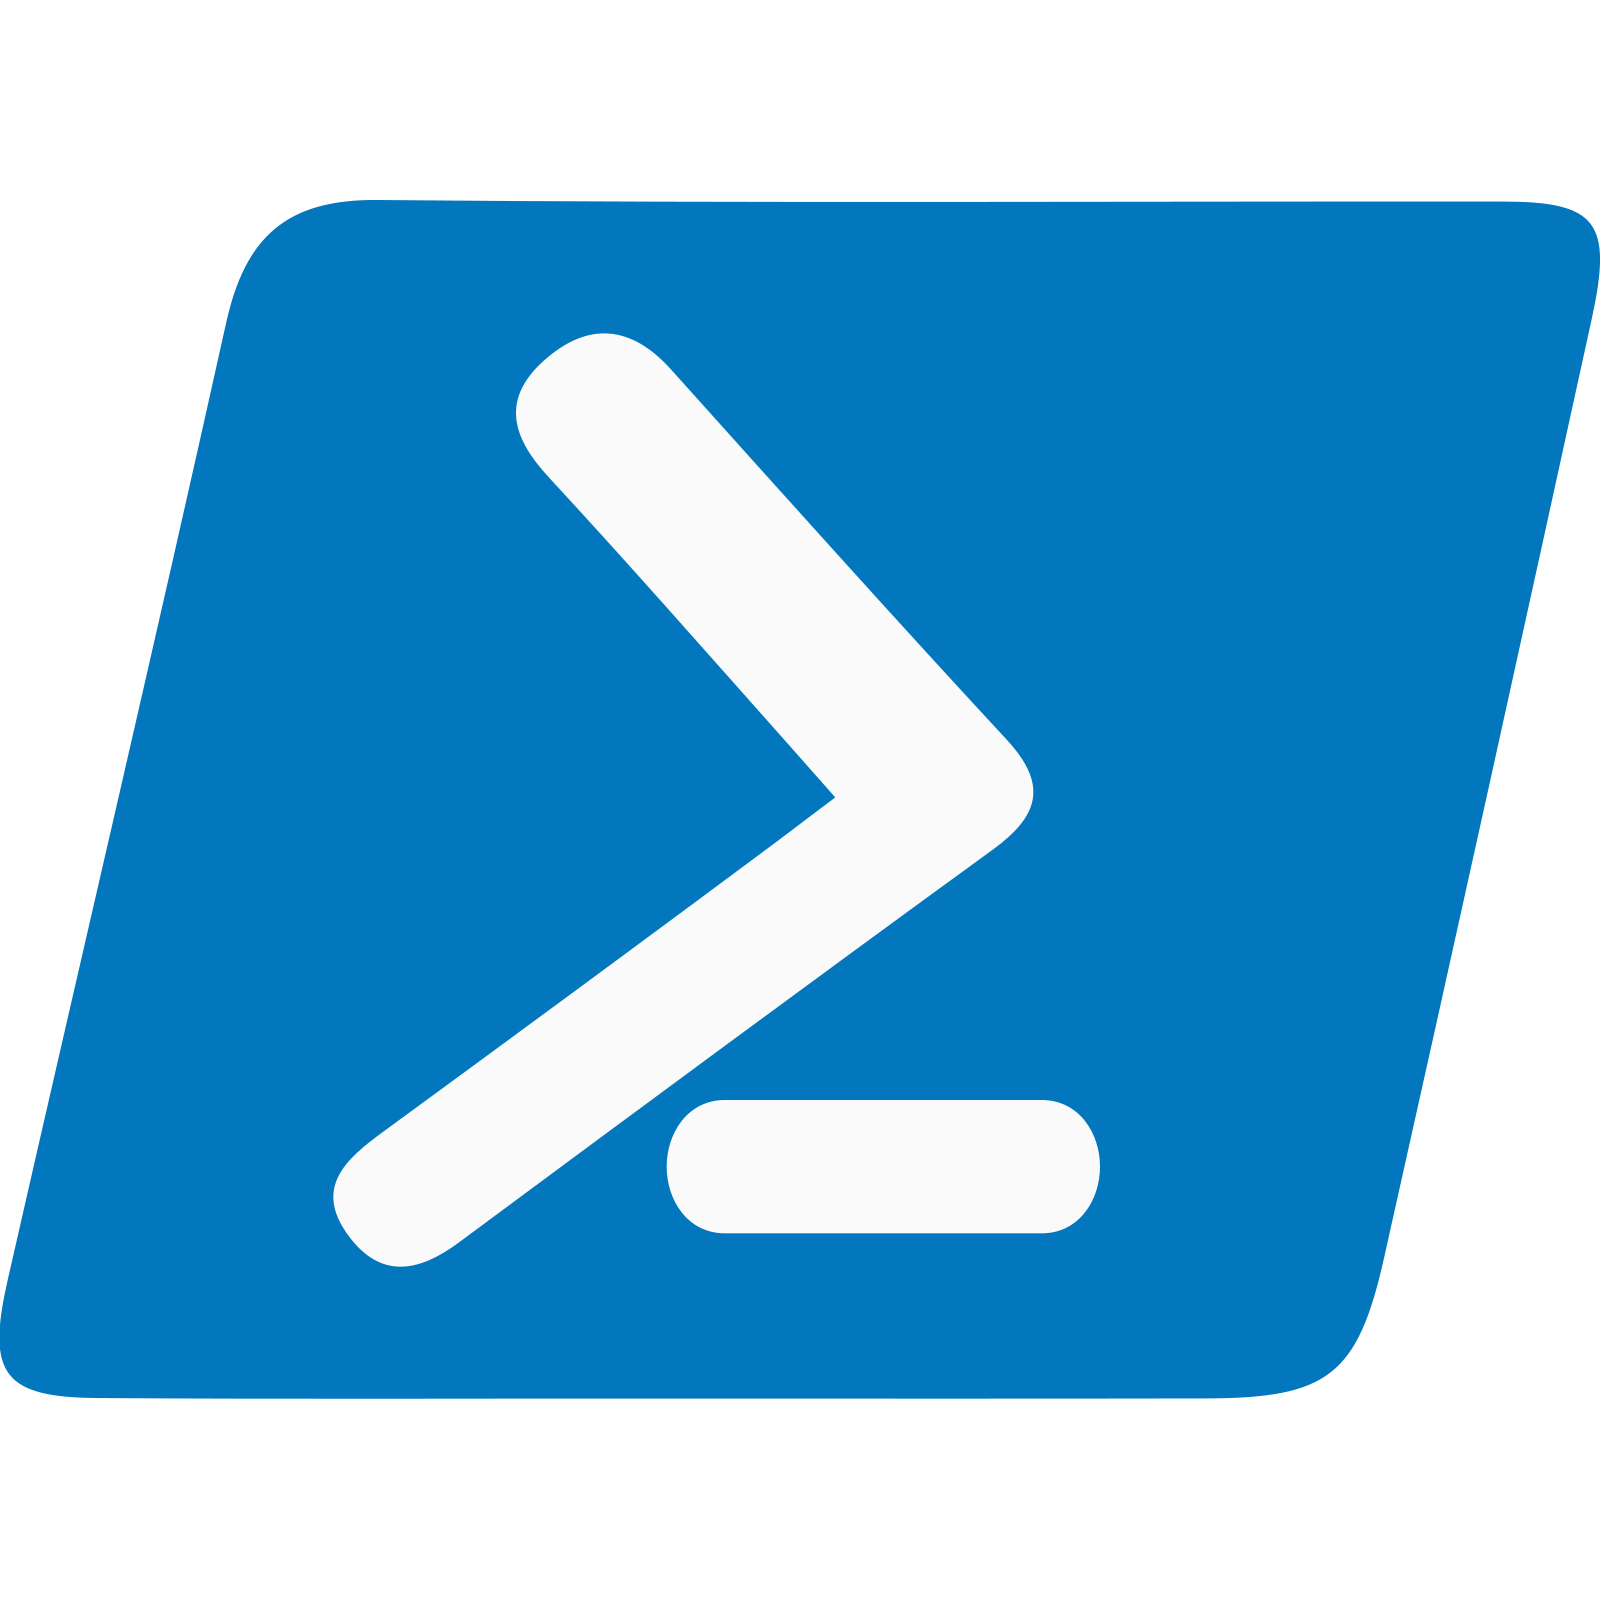 Episode 8 - PowerShell Summit